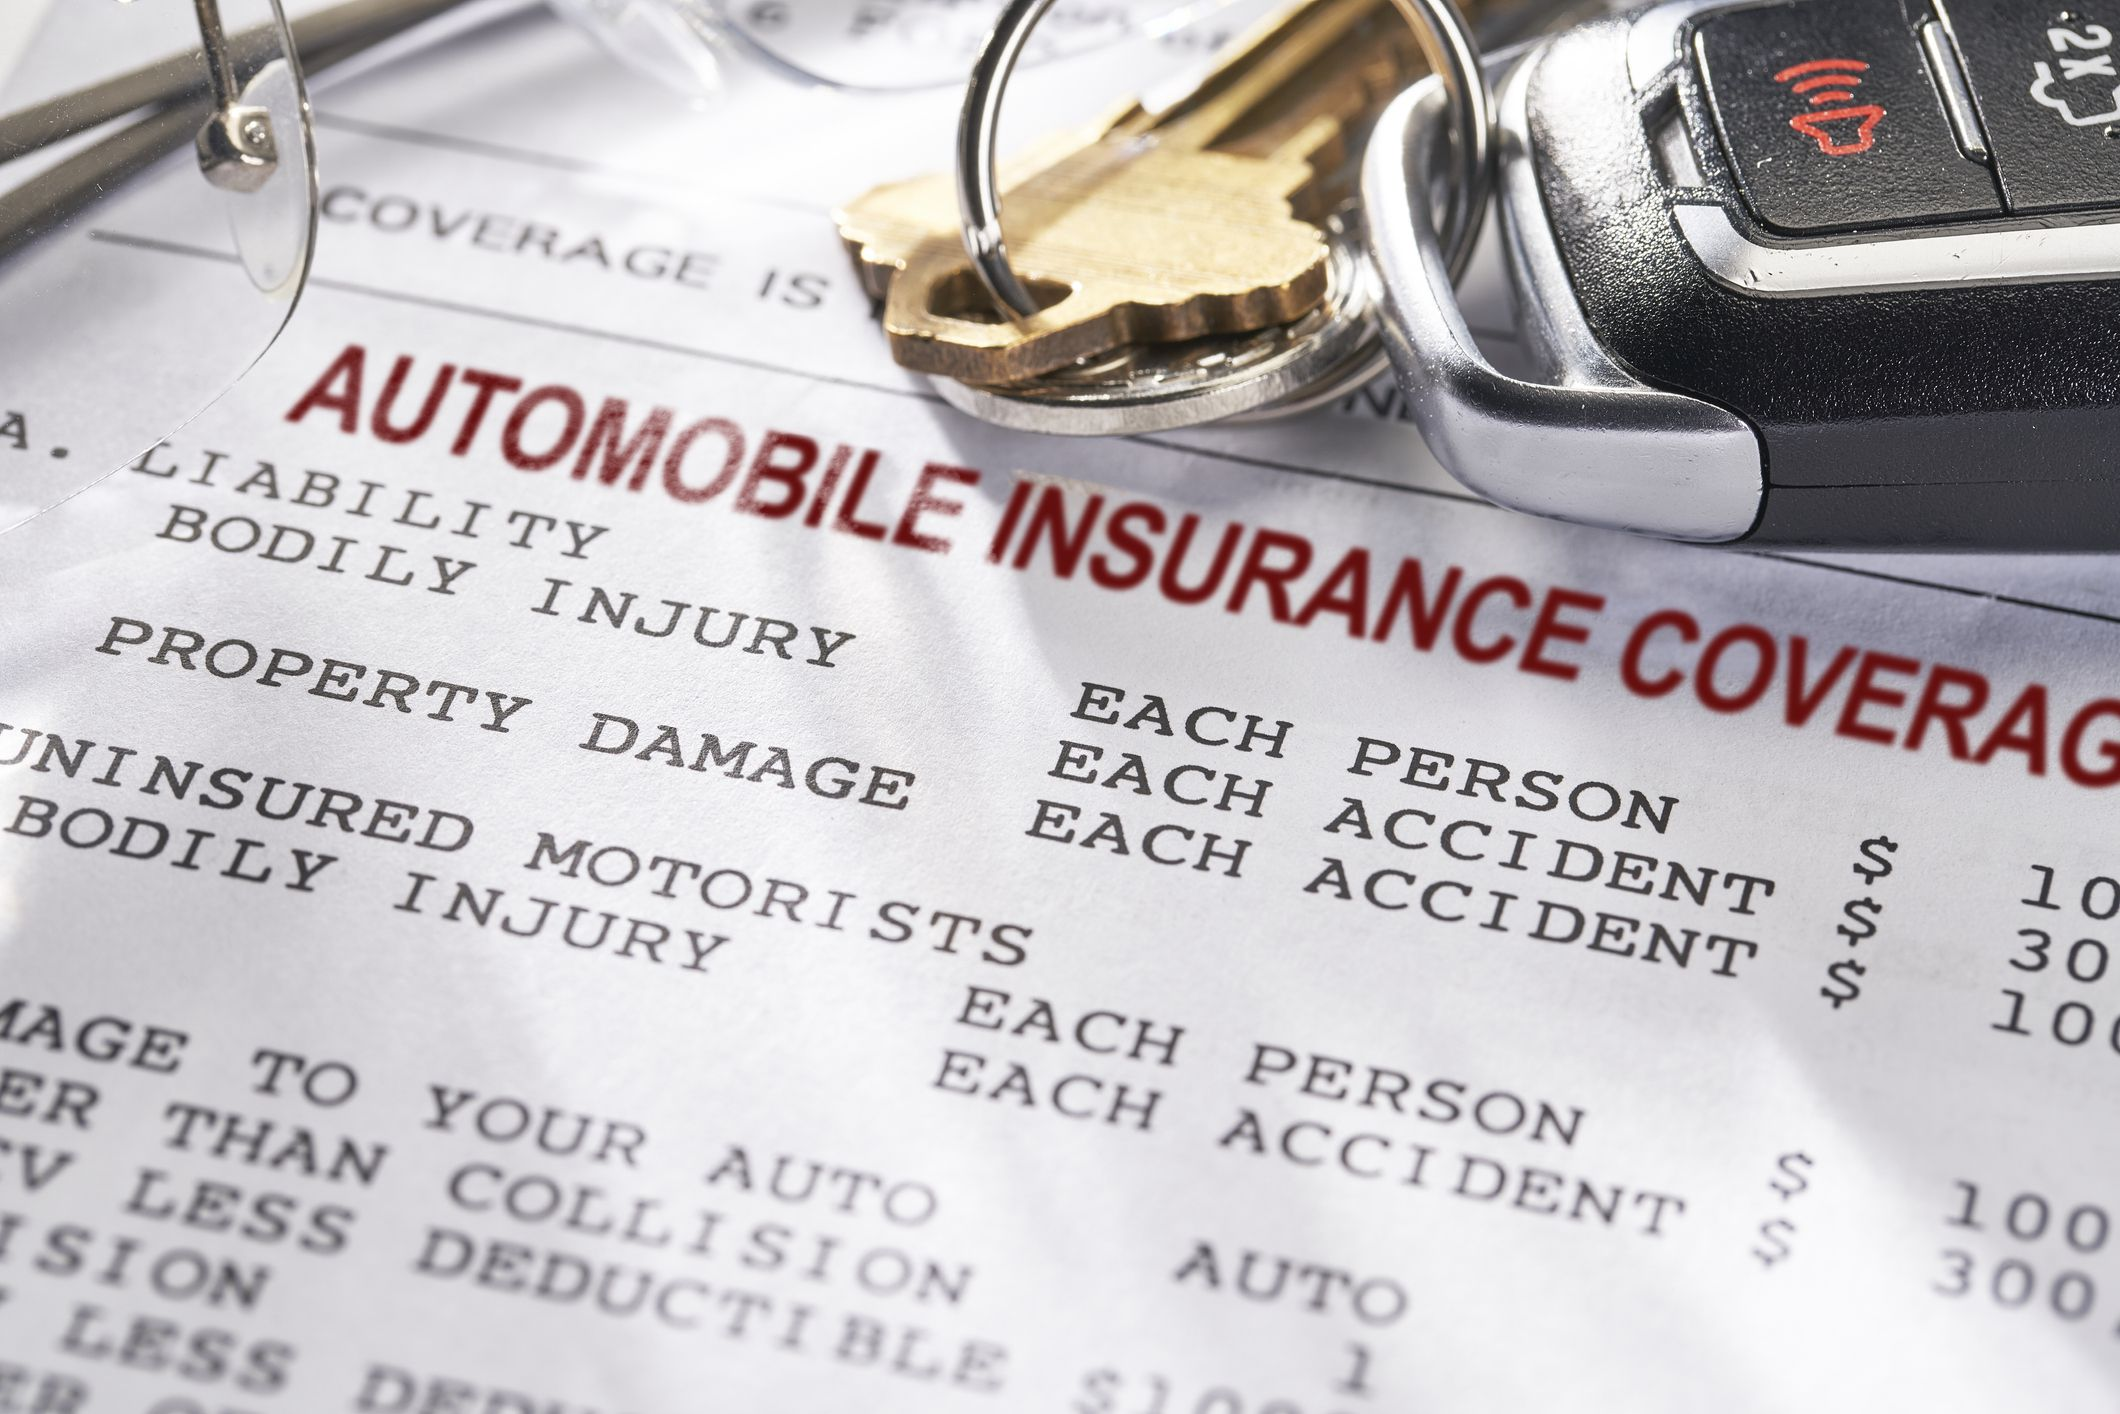 Valuable Tips on Looking for Discounts and Affordable Insurance Options